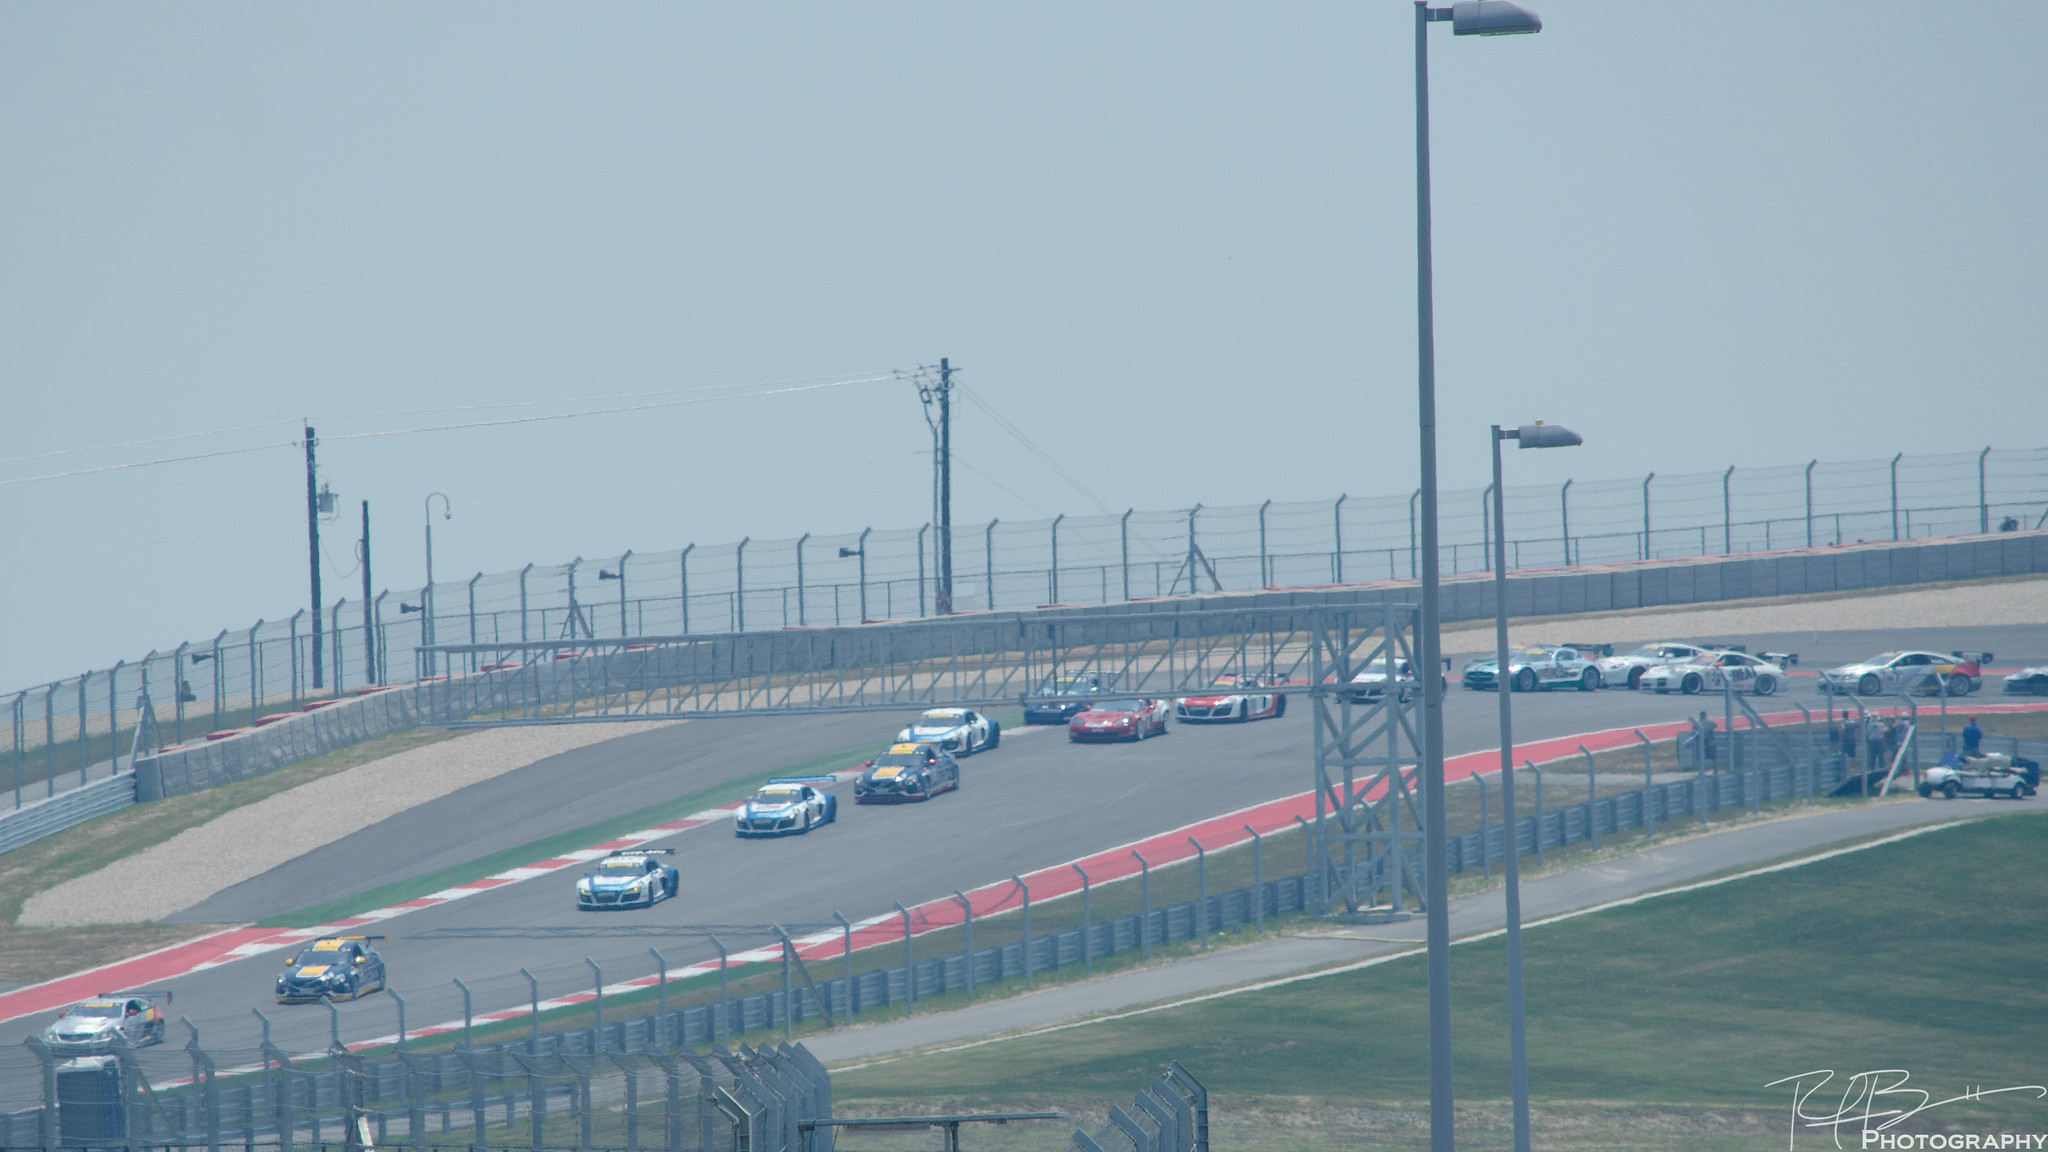 The field at Turn 1